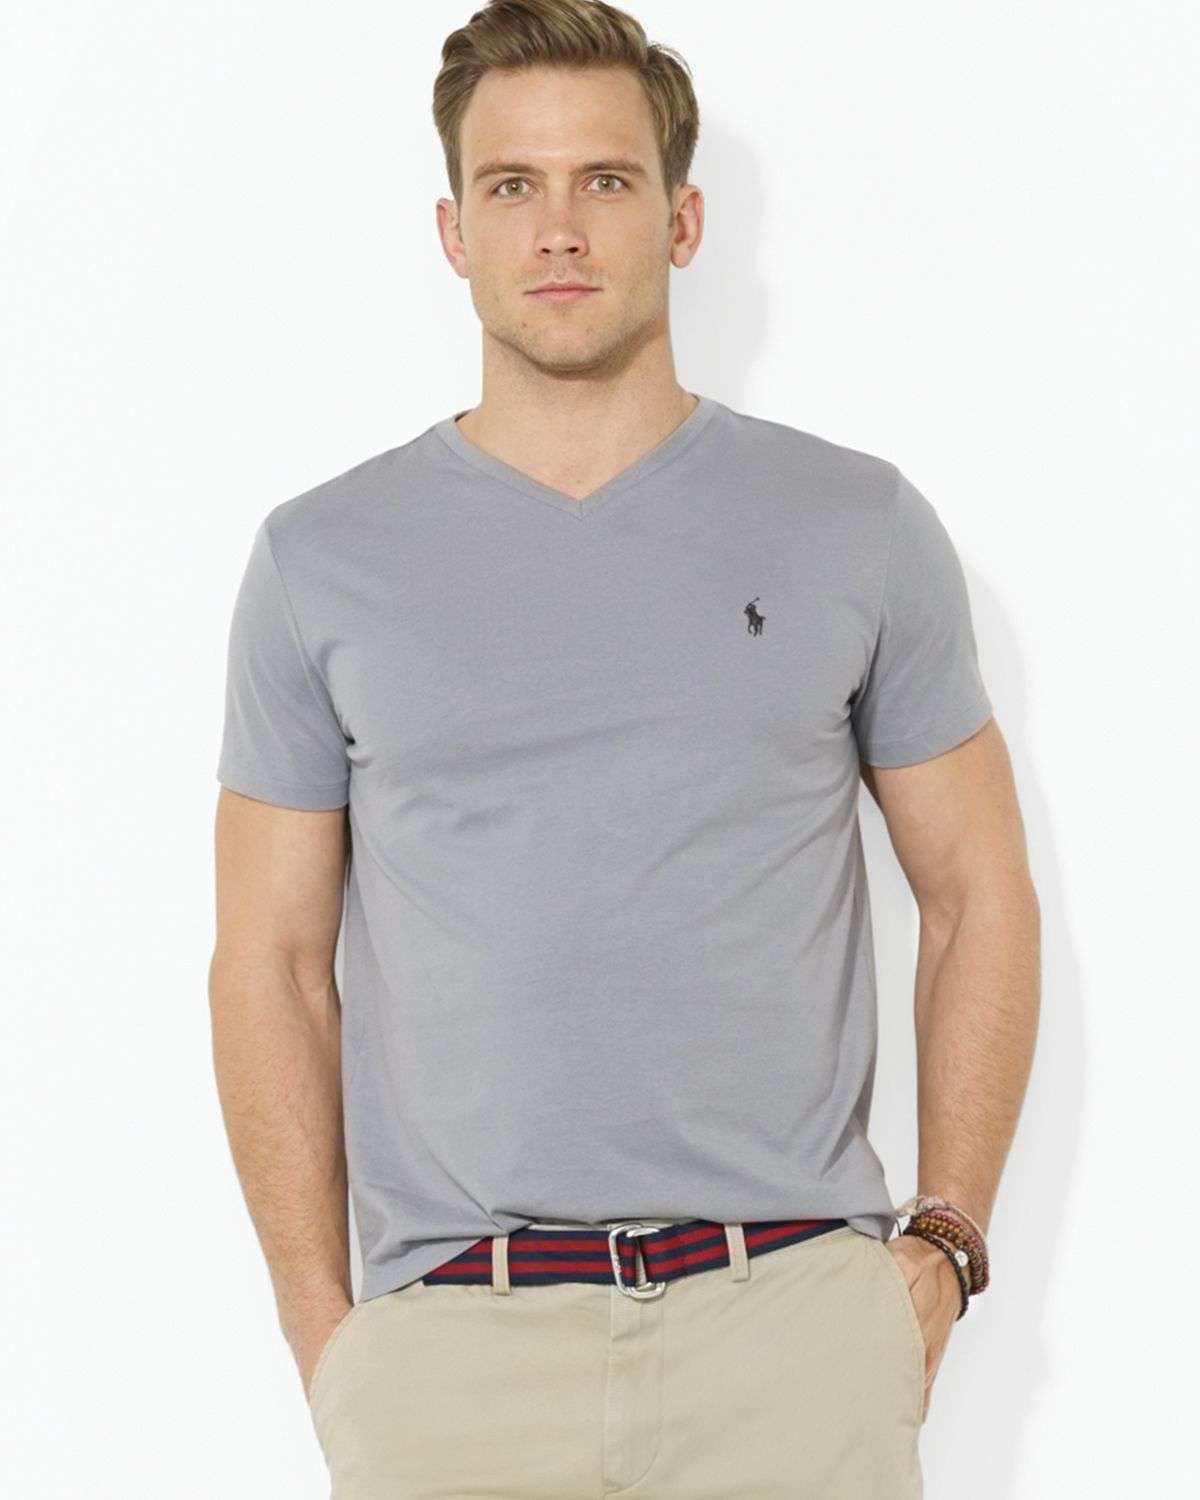 Polo ralph lauren Short Sleeve Cotton Jersey V-neck Tee in ...